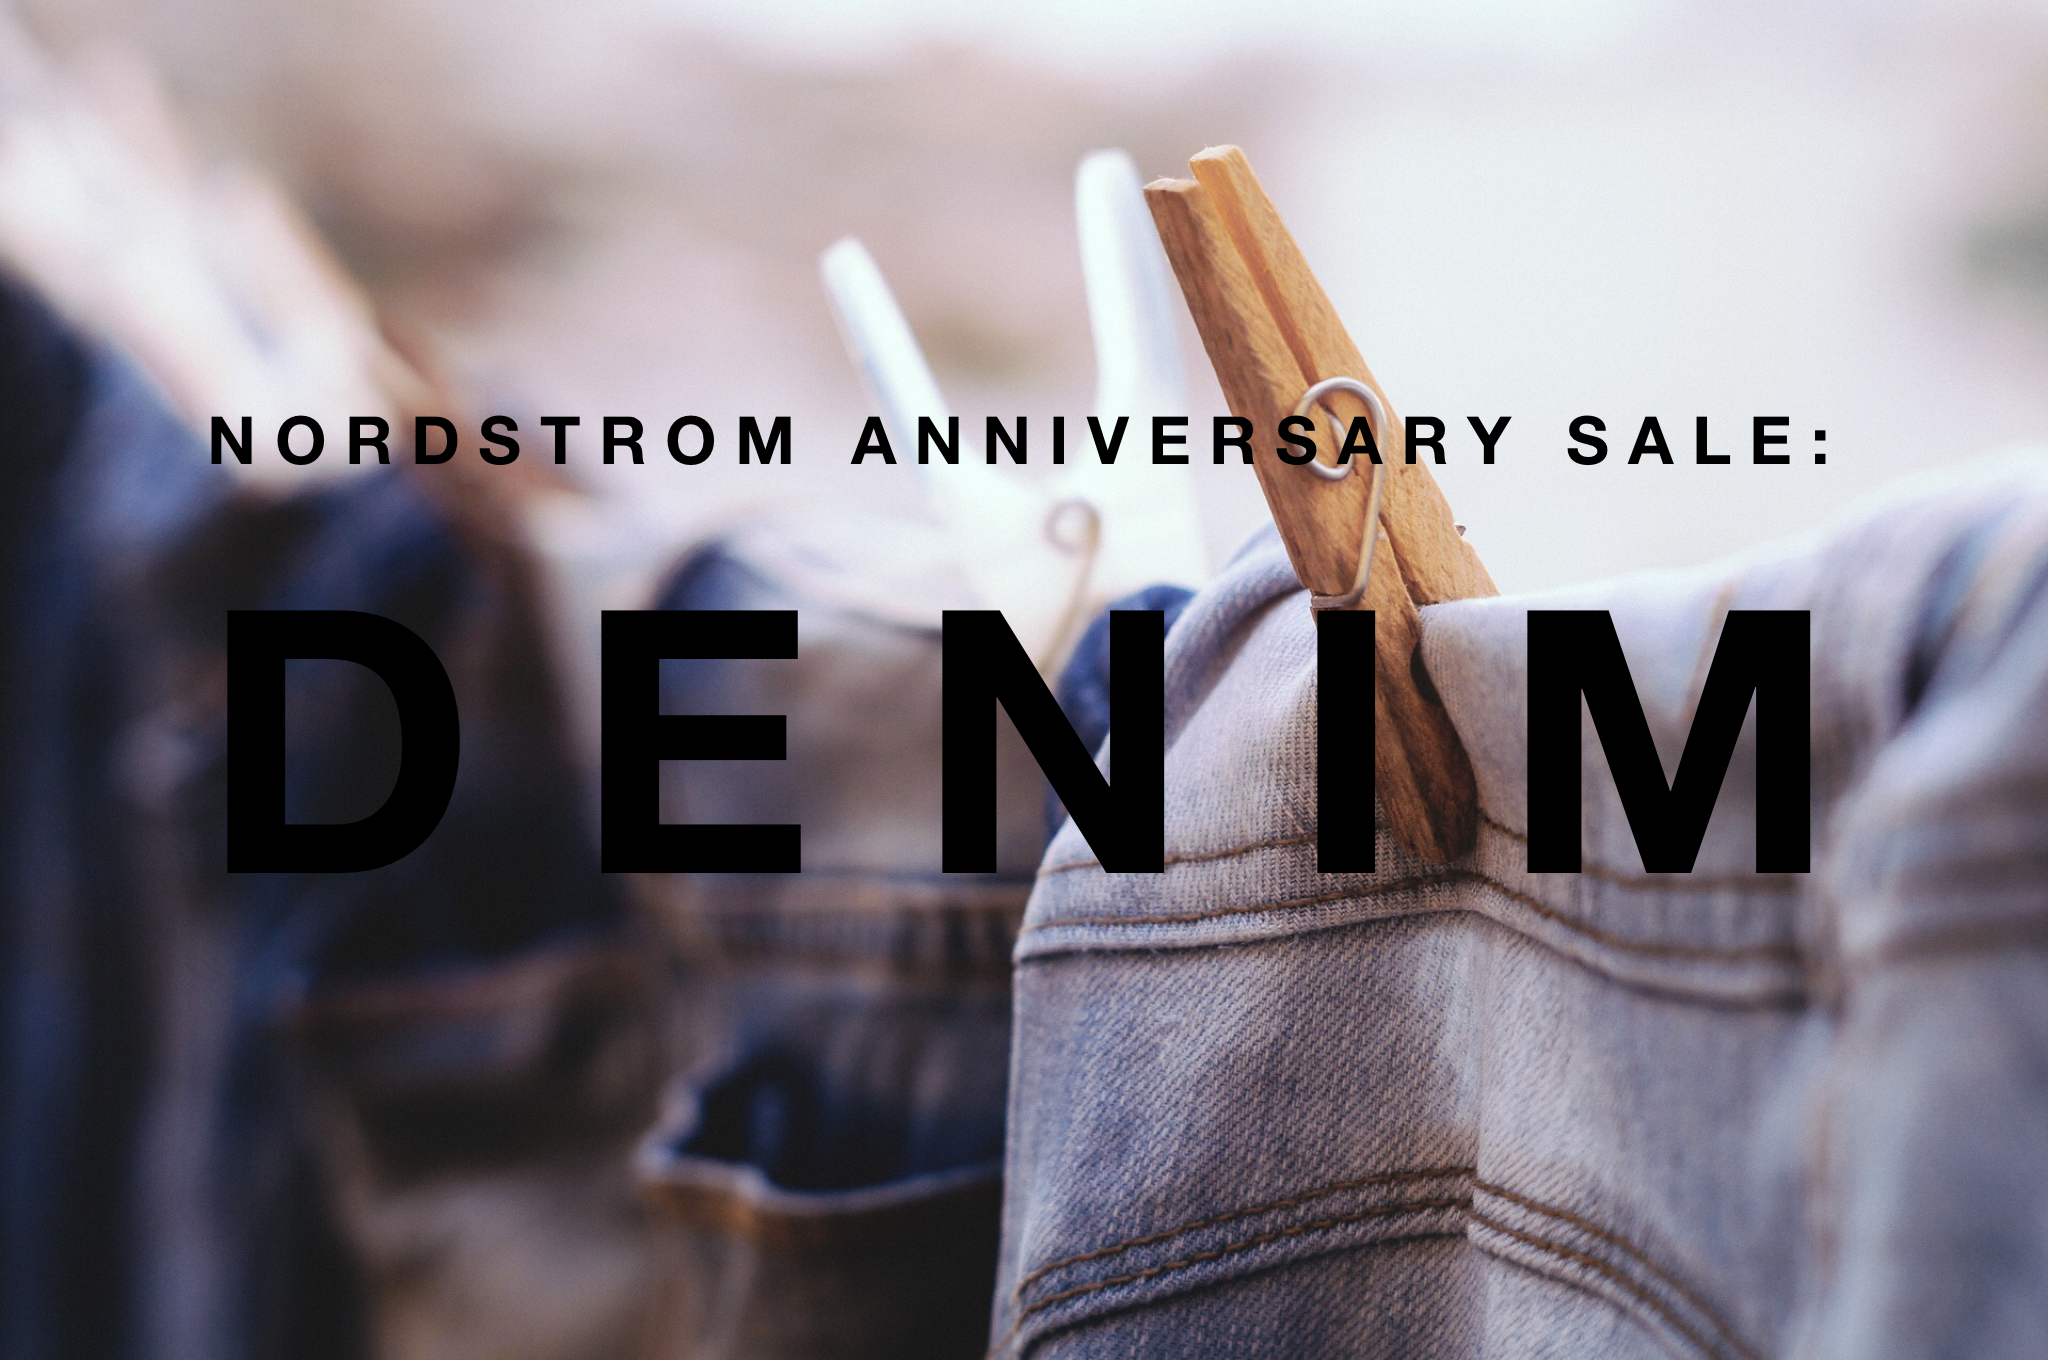 Nordstrom Anniversary Sale!!